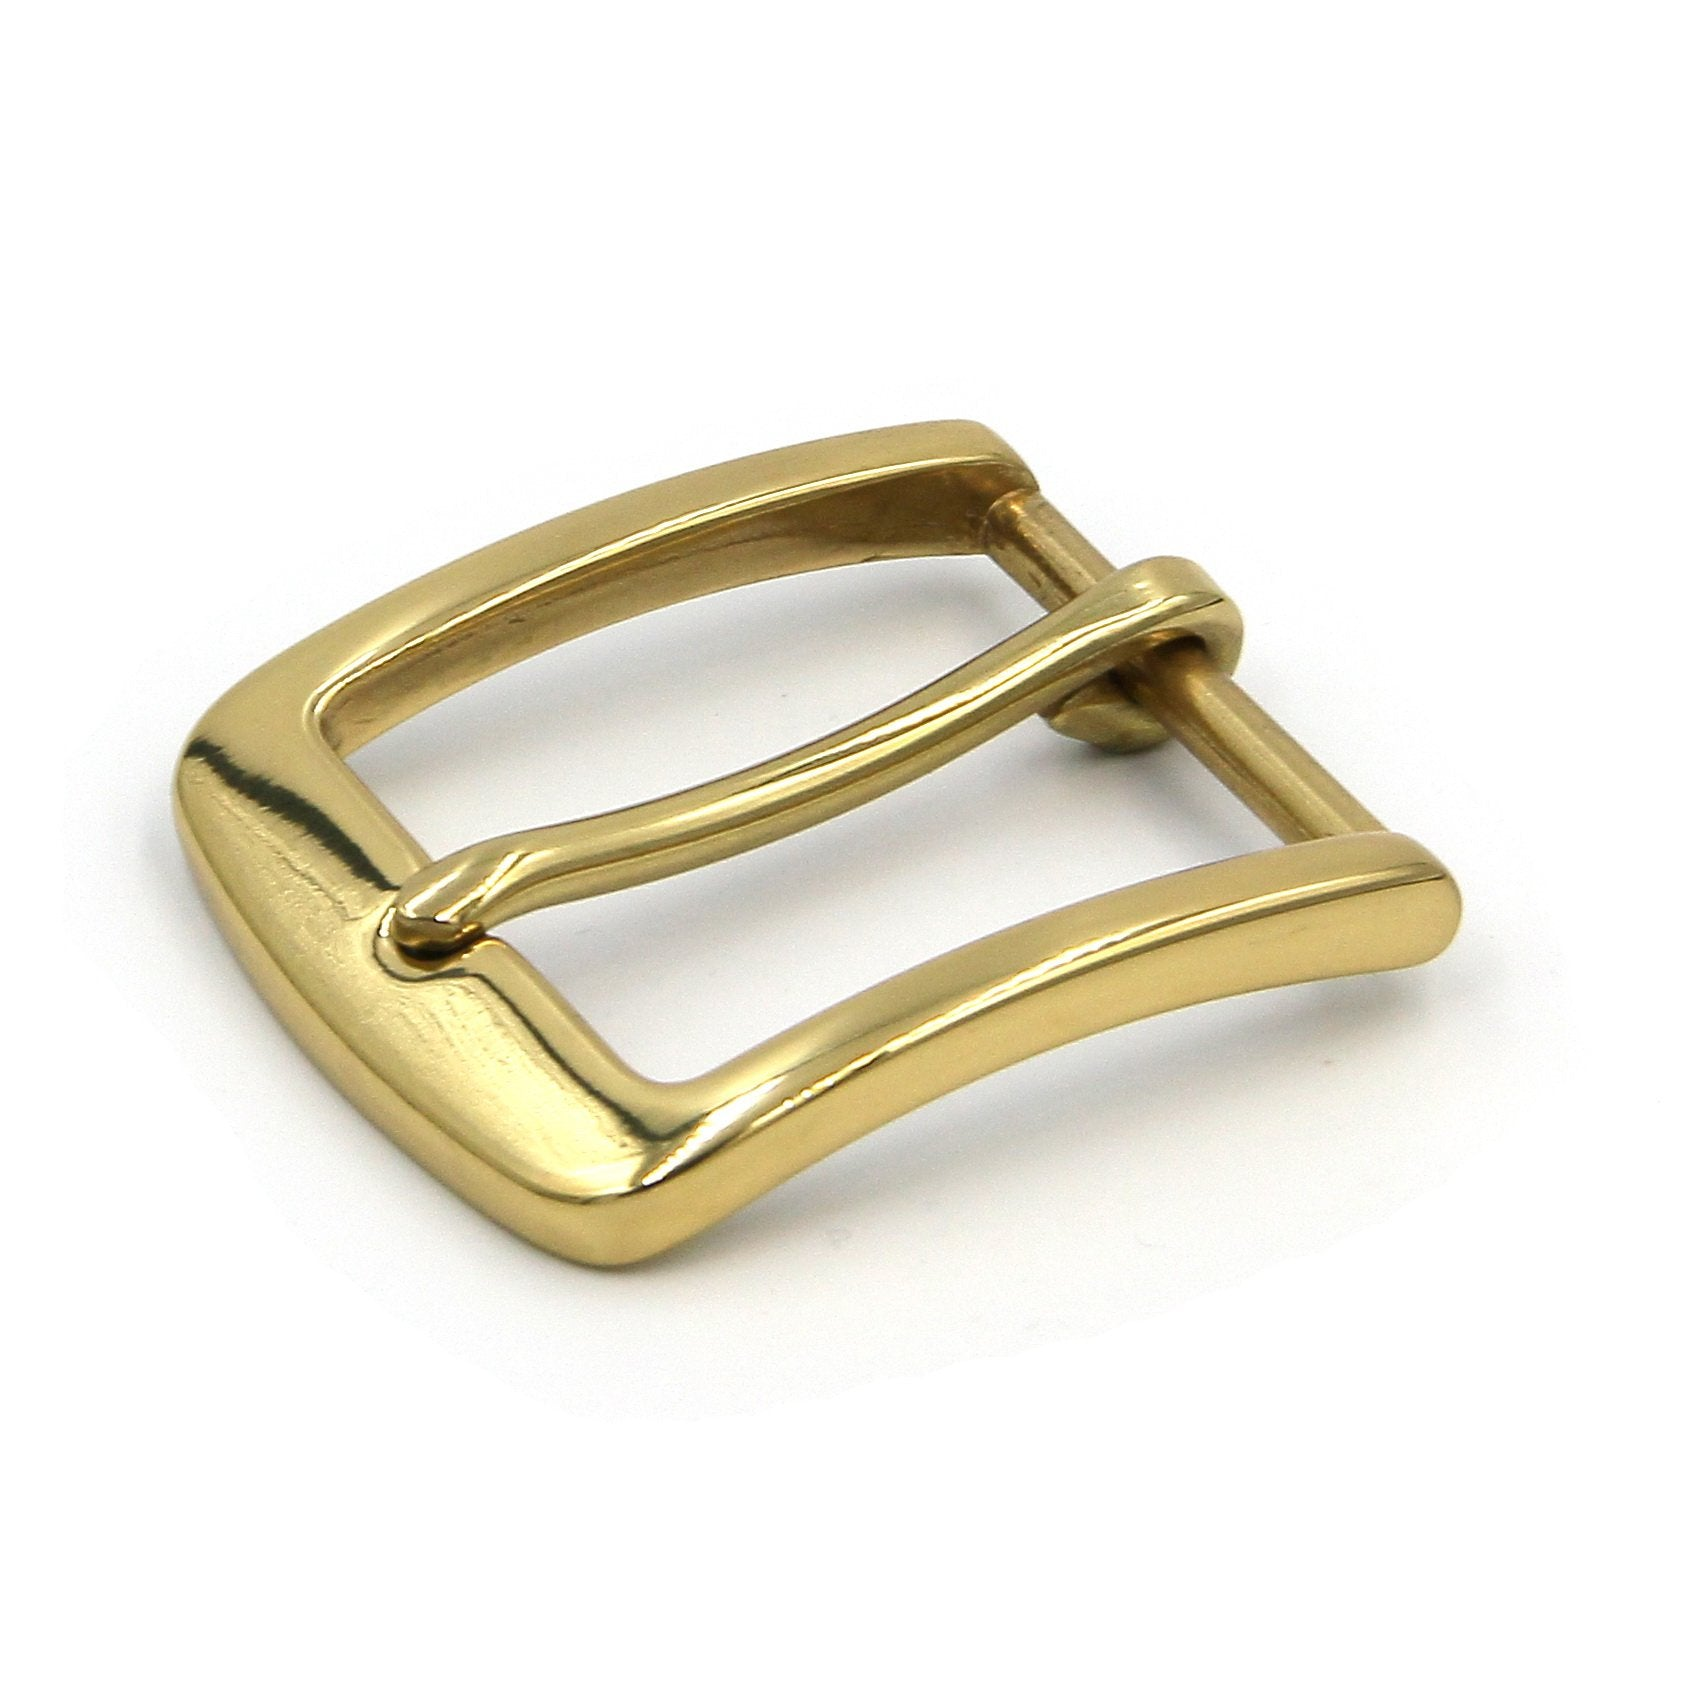 Brass Buckle Glass Finish Gold Color Leather Belt Buckle - Metal Field